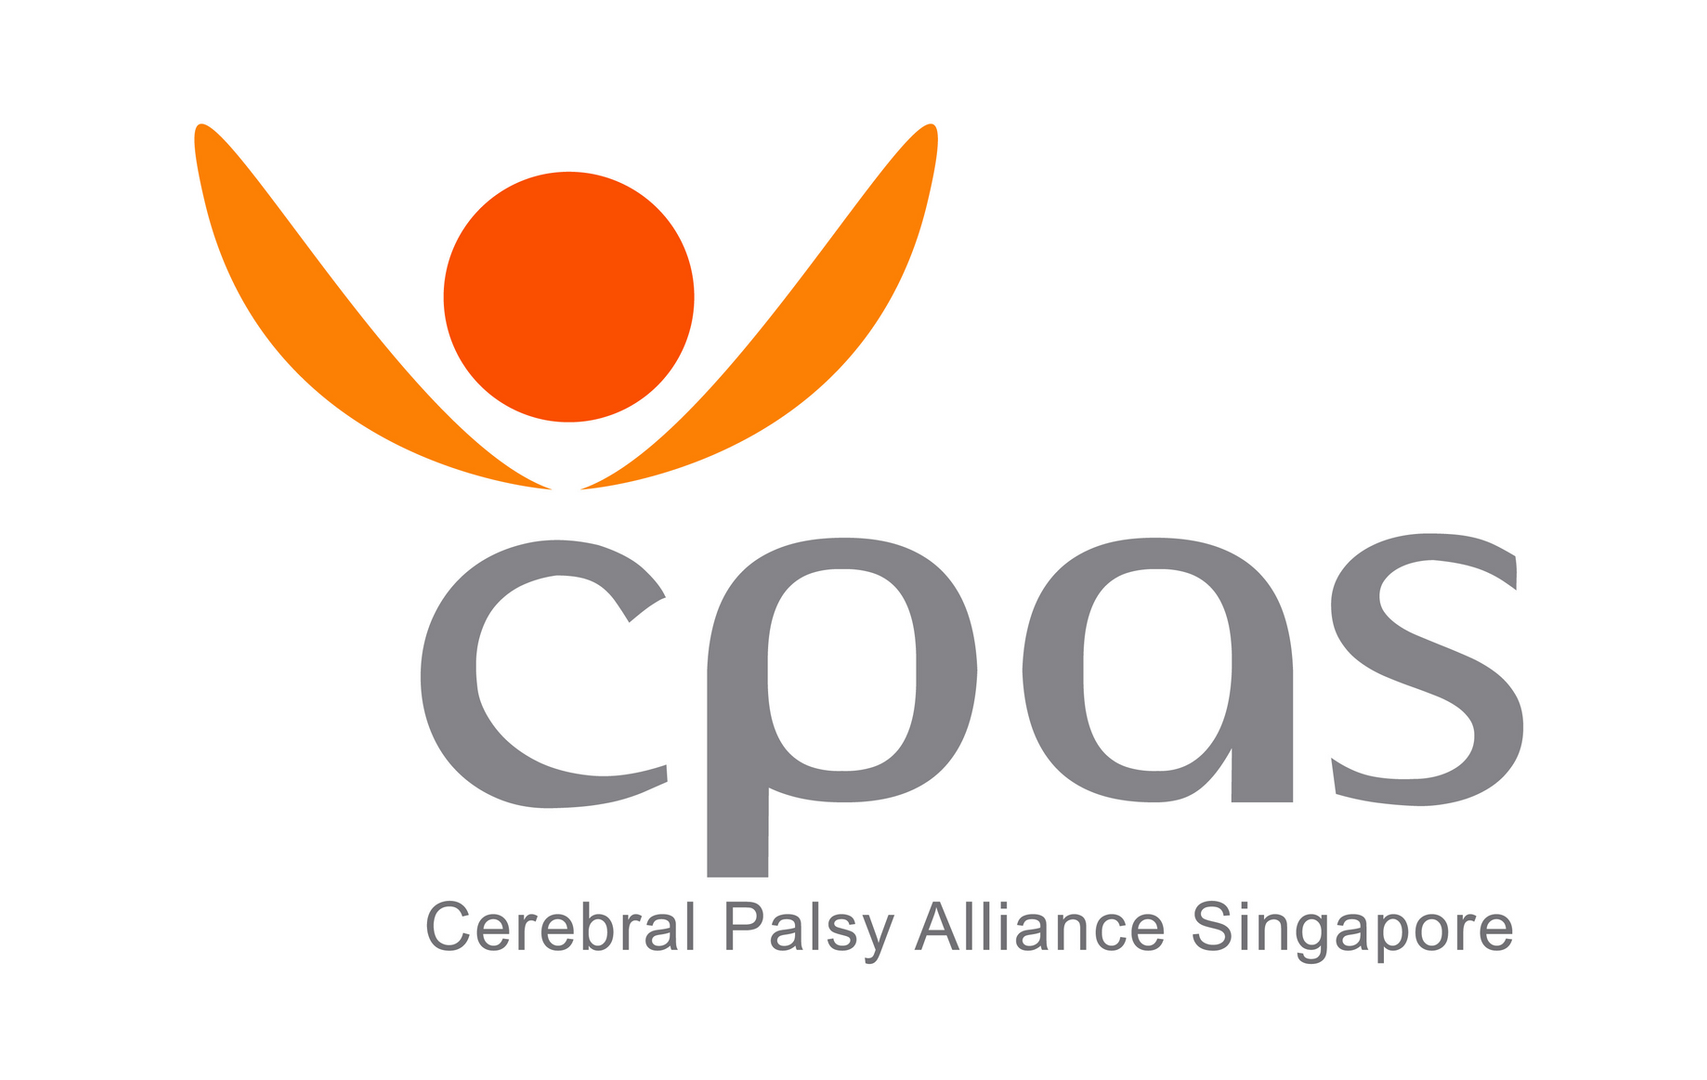 Cerebral Palsy Alliance Singapore